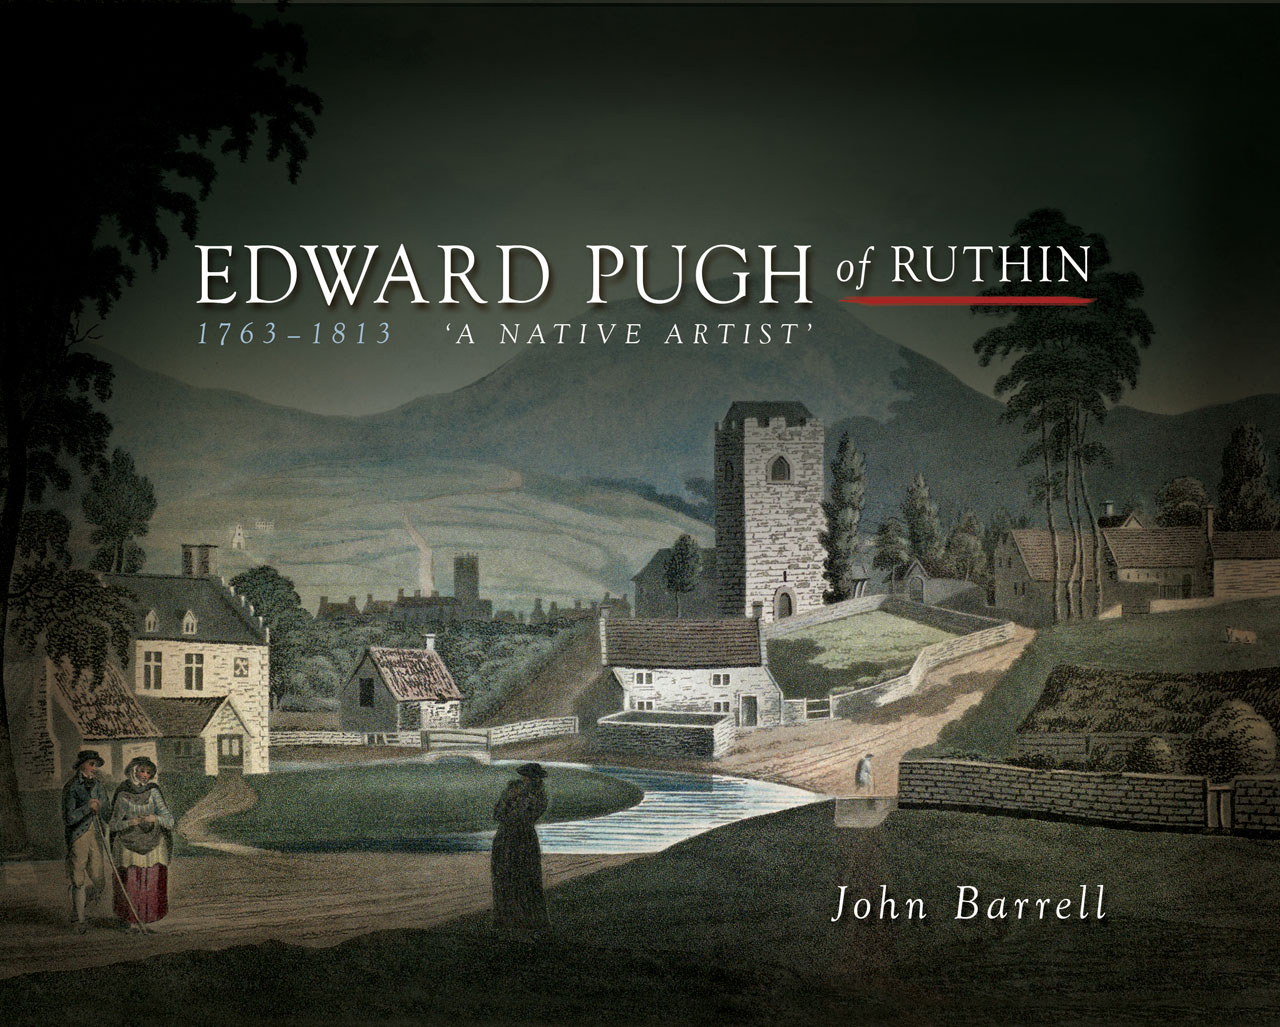 Edward Pugh of Ruthin 1763-1813